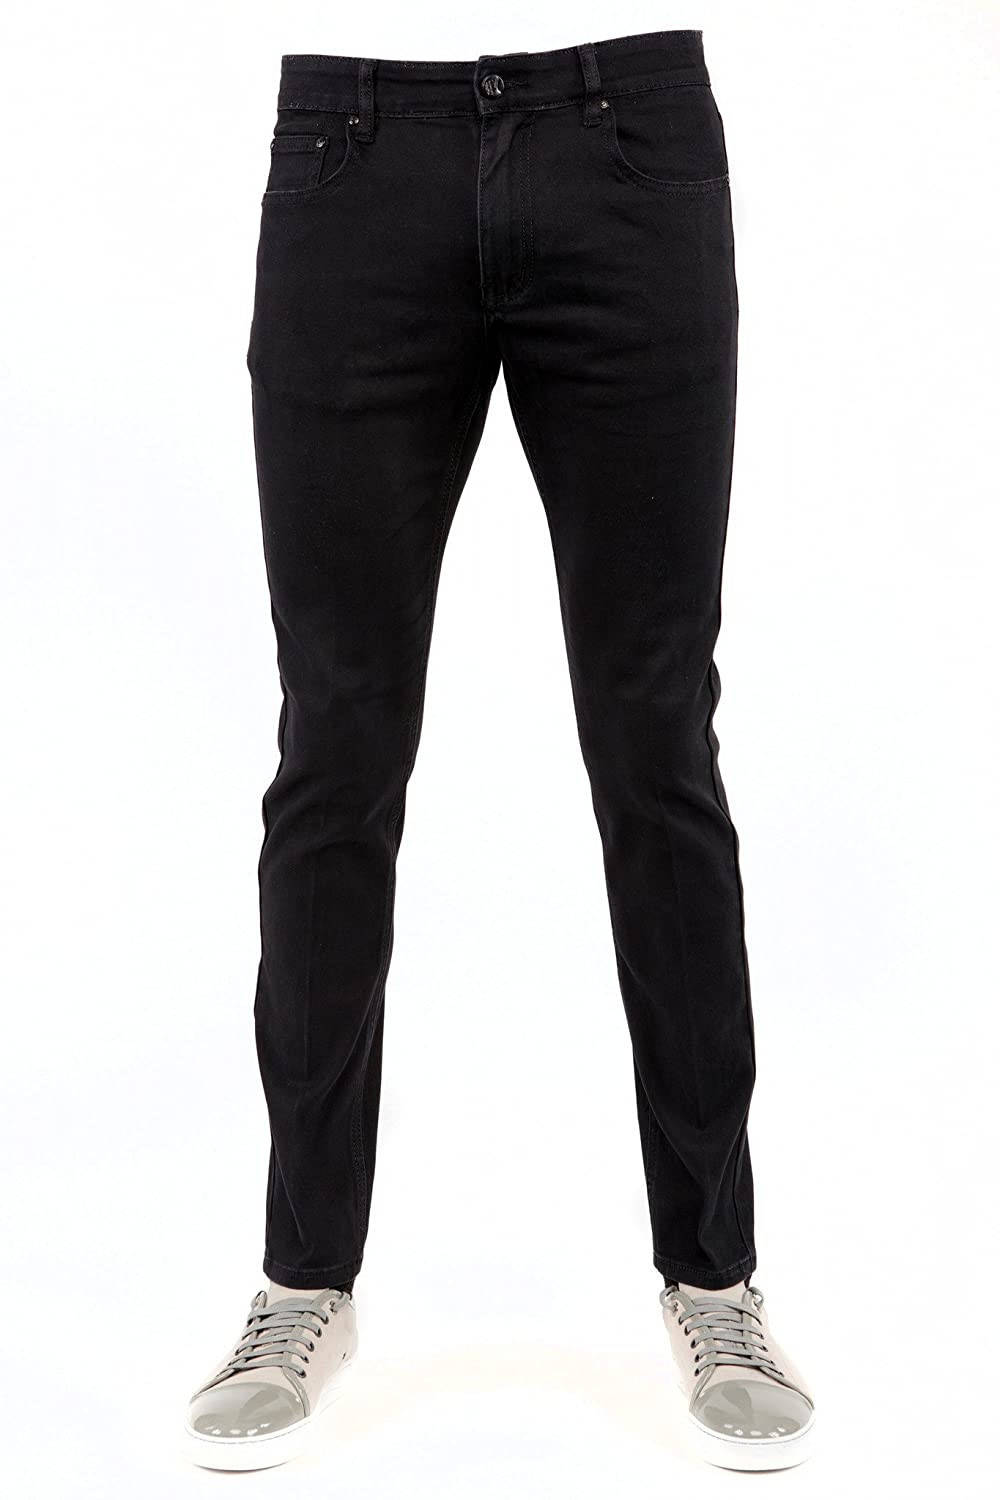 655a916b2d Perruzo Men's Skinny Fit Stylish Stretch Jeans at Amazon Men's Clothing  store: